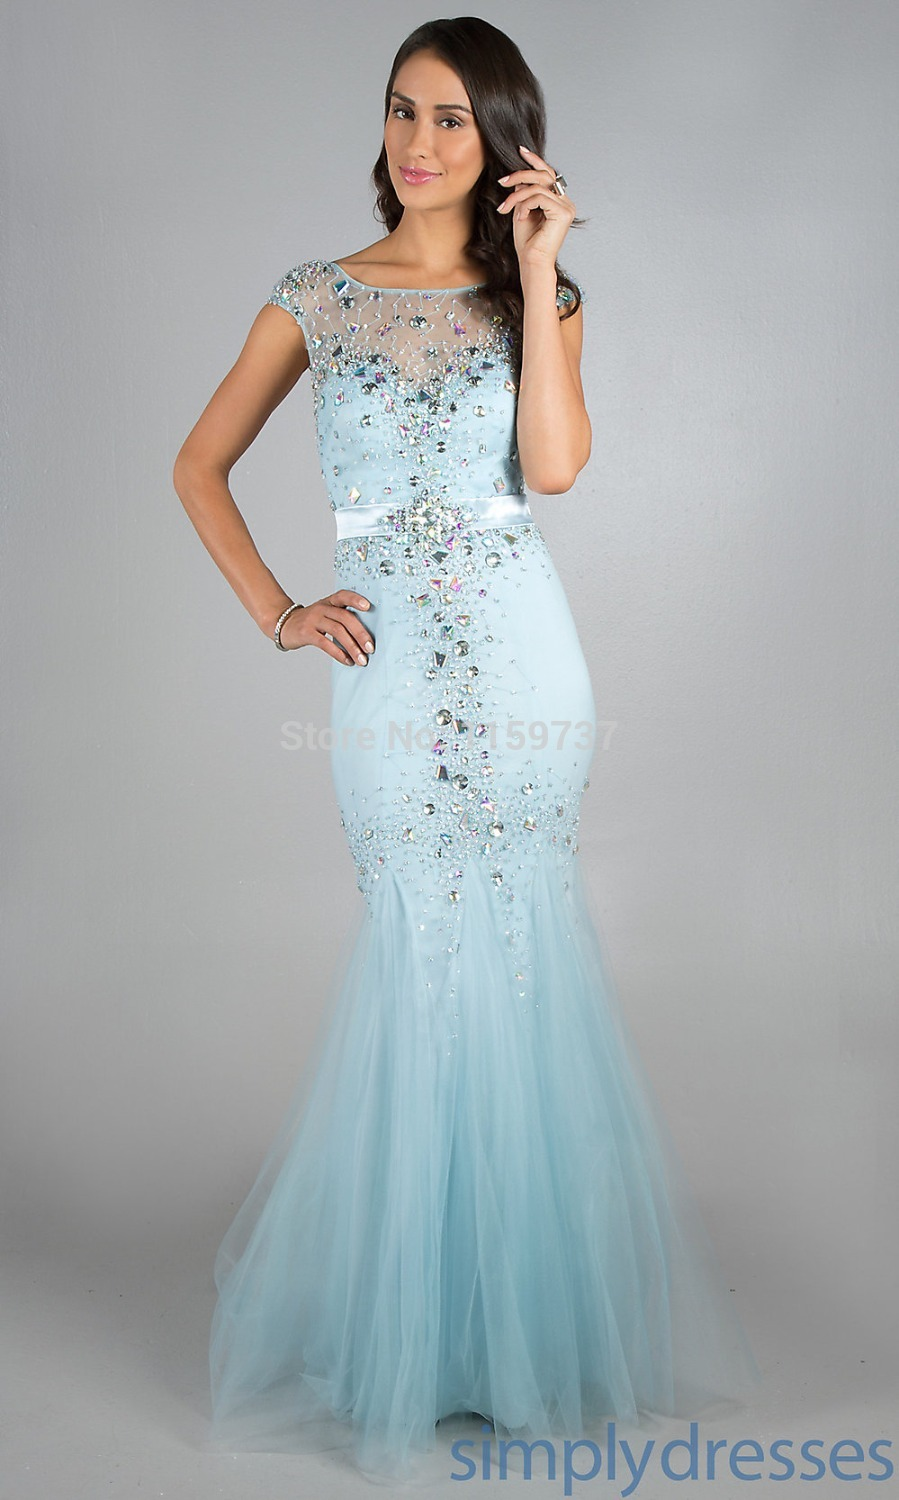 Teenage Prom Dresses Uk Champagne Best Tall Girls Discounted ...